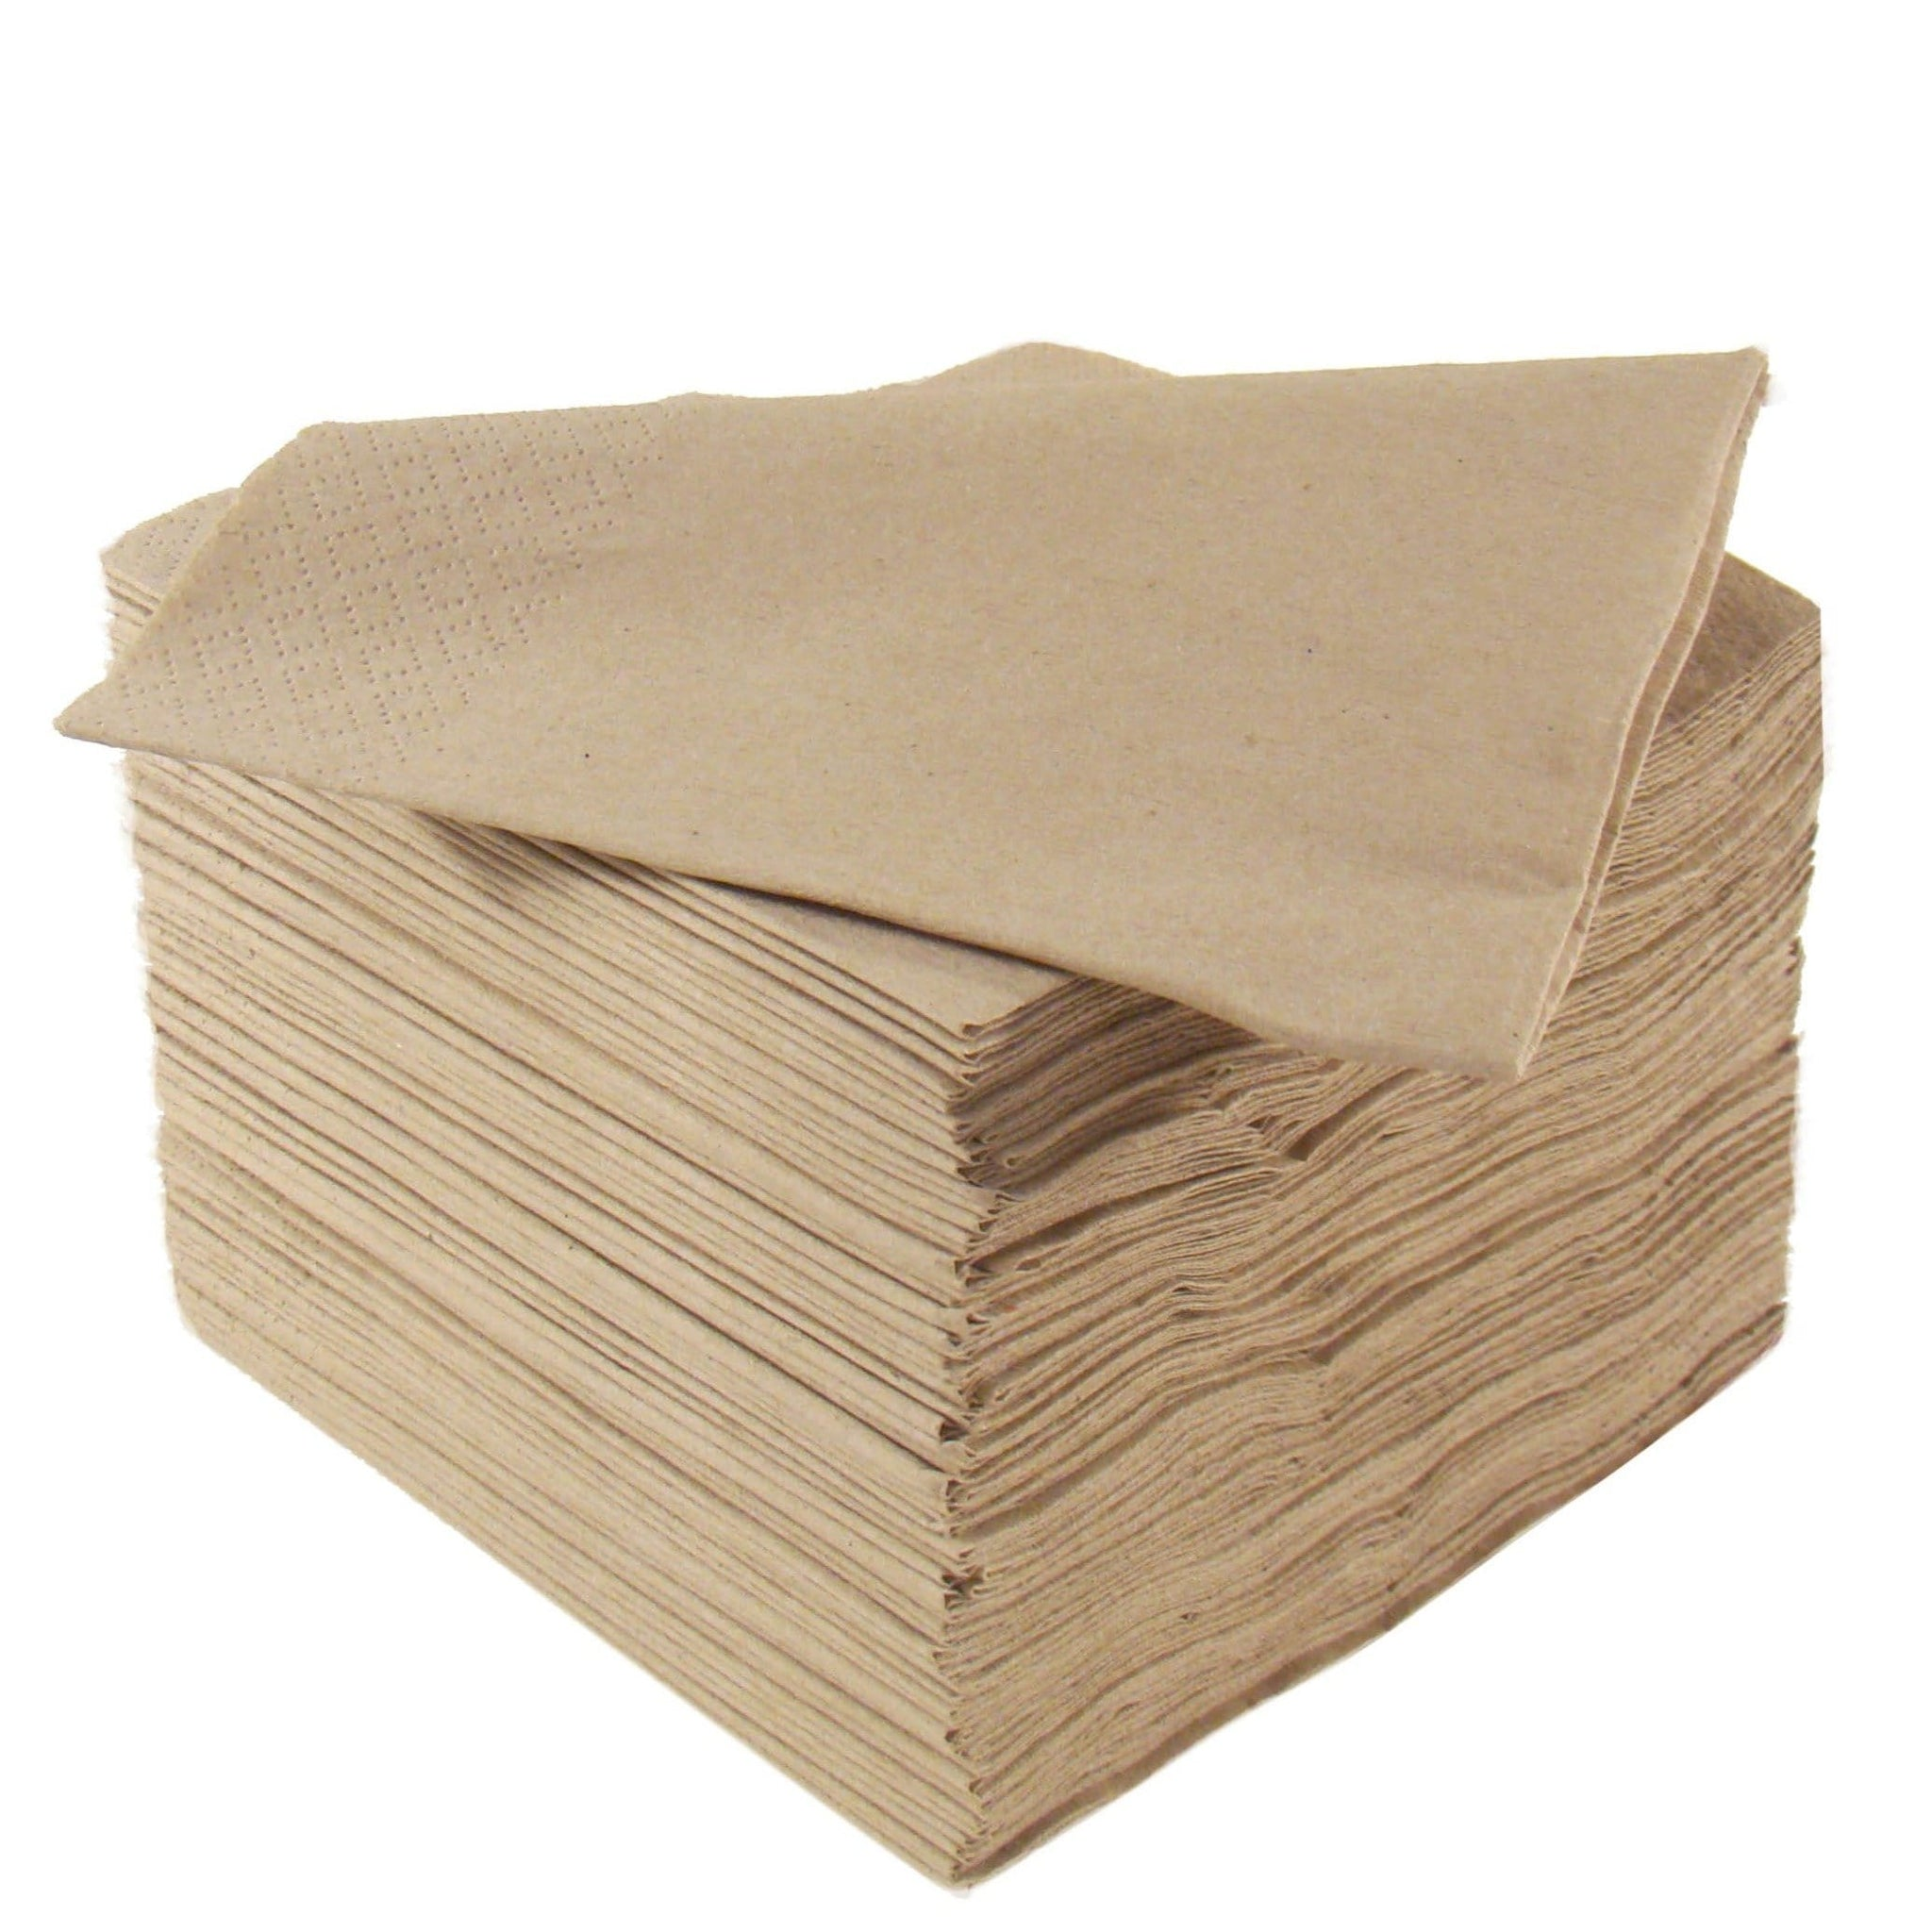 Natural Napkins - Recycled - 2ply 33cm - Recyclable & Compostable - NaturePac